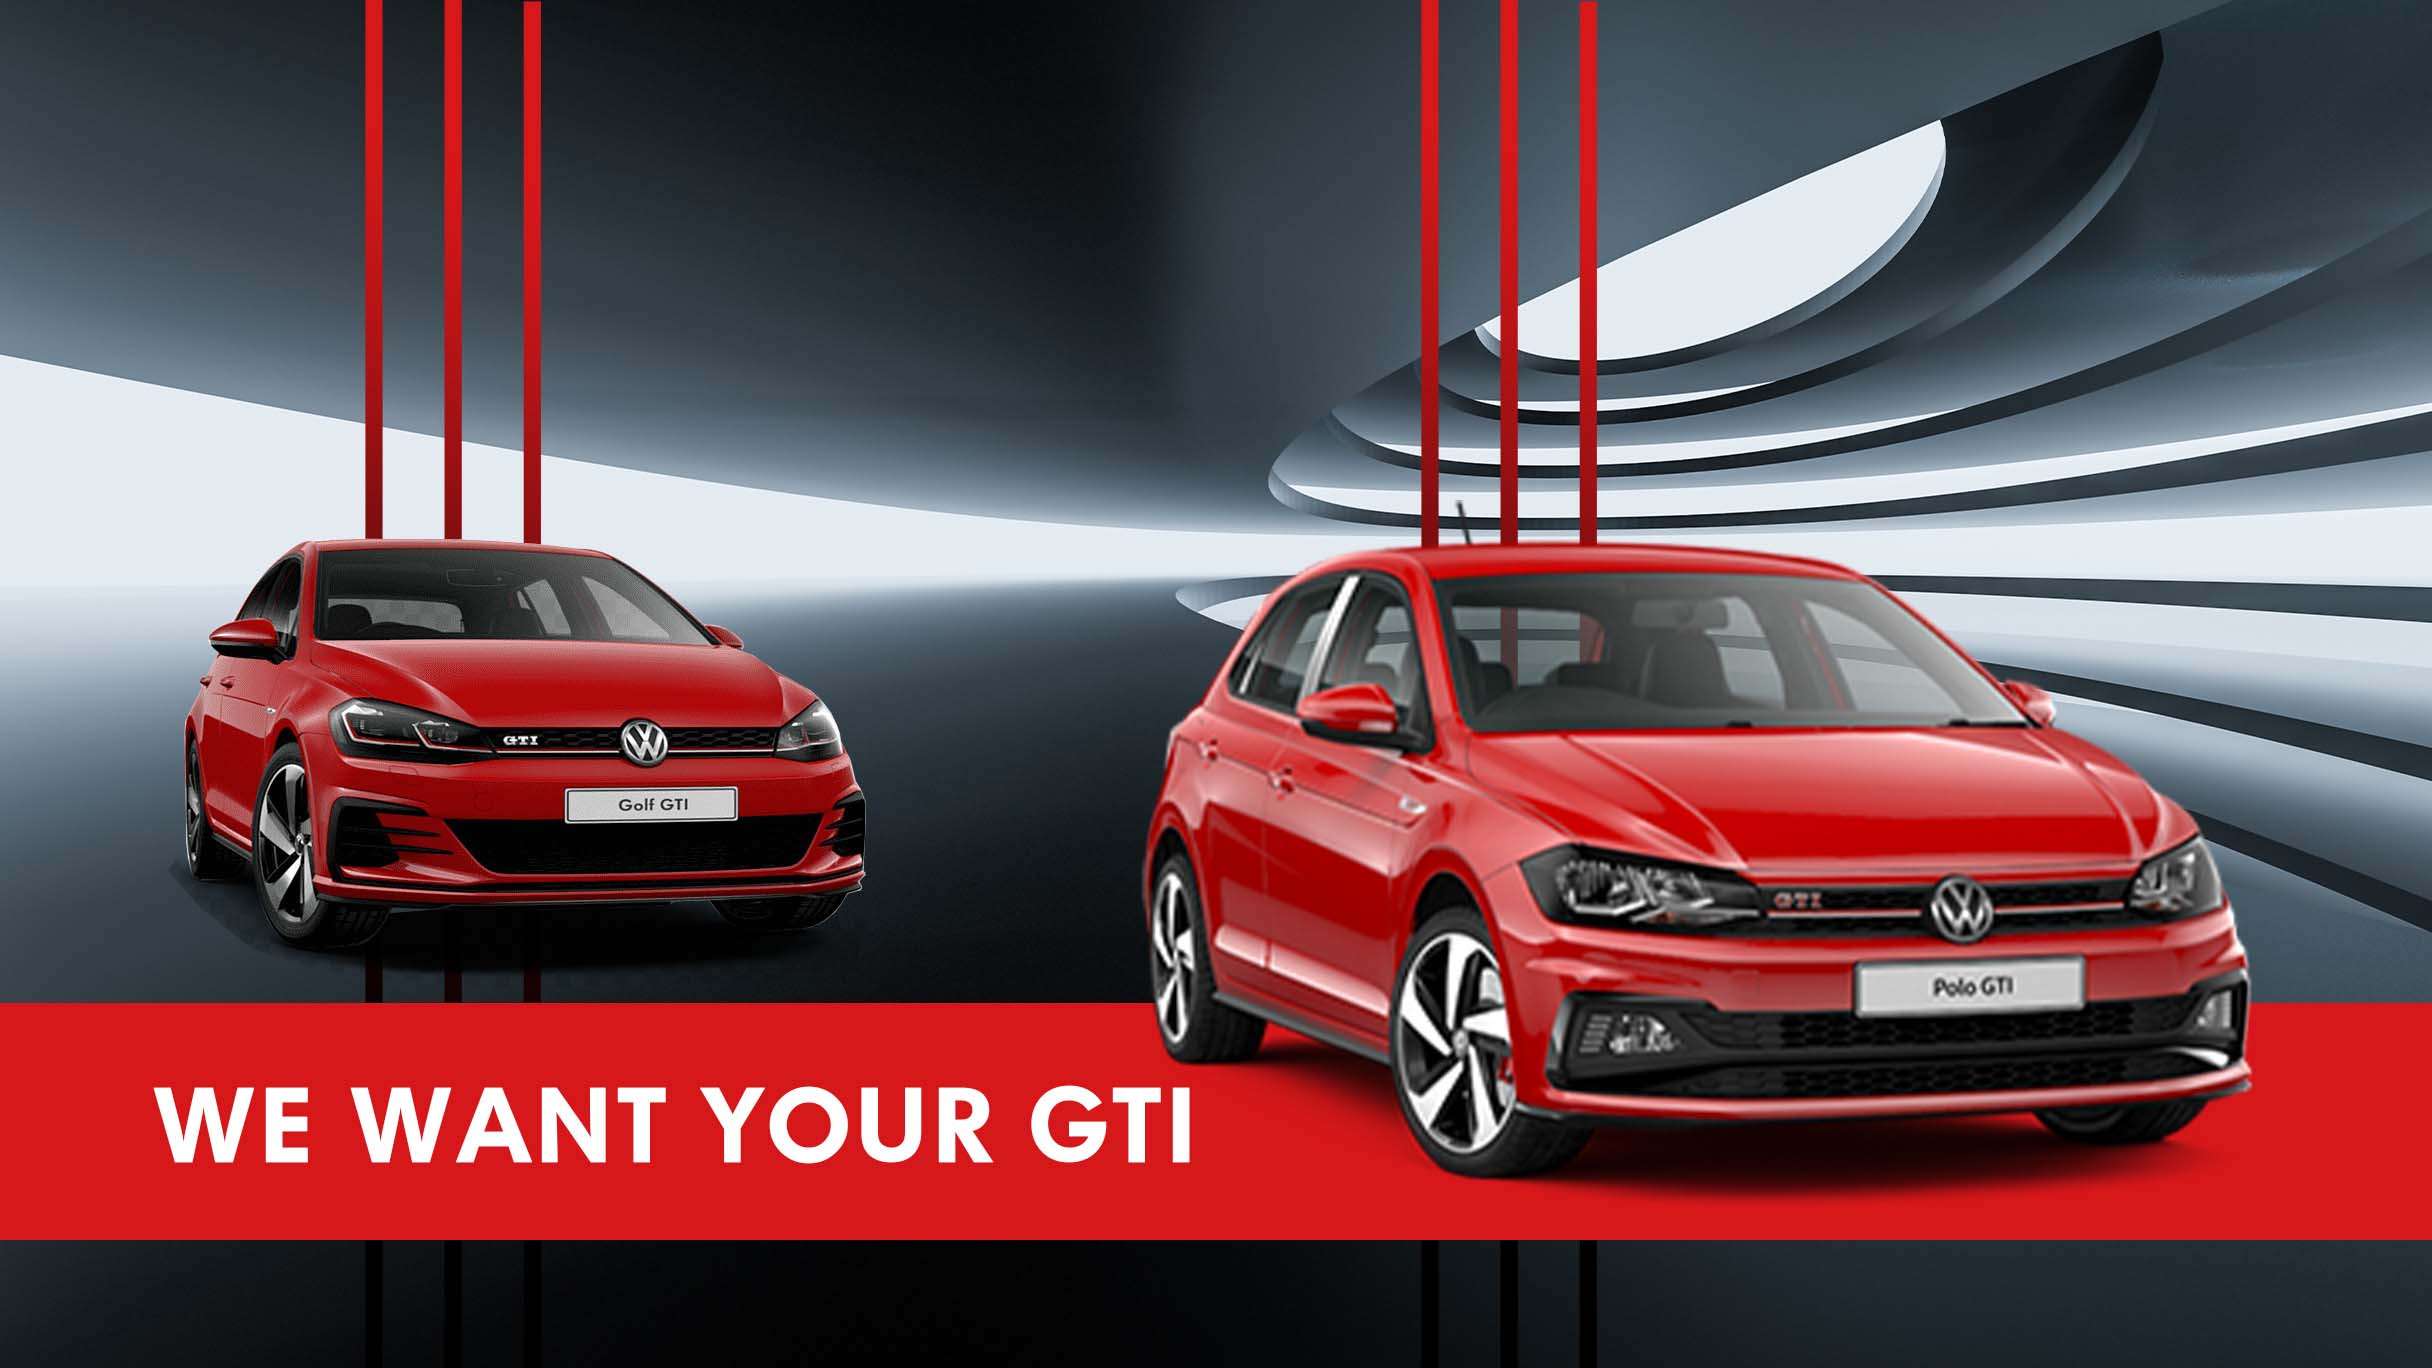 We want you GTI car back